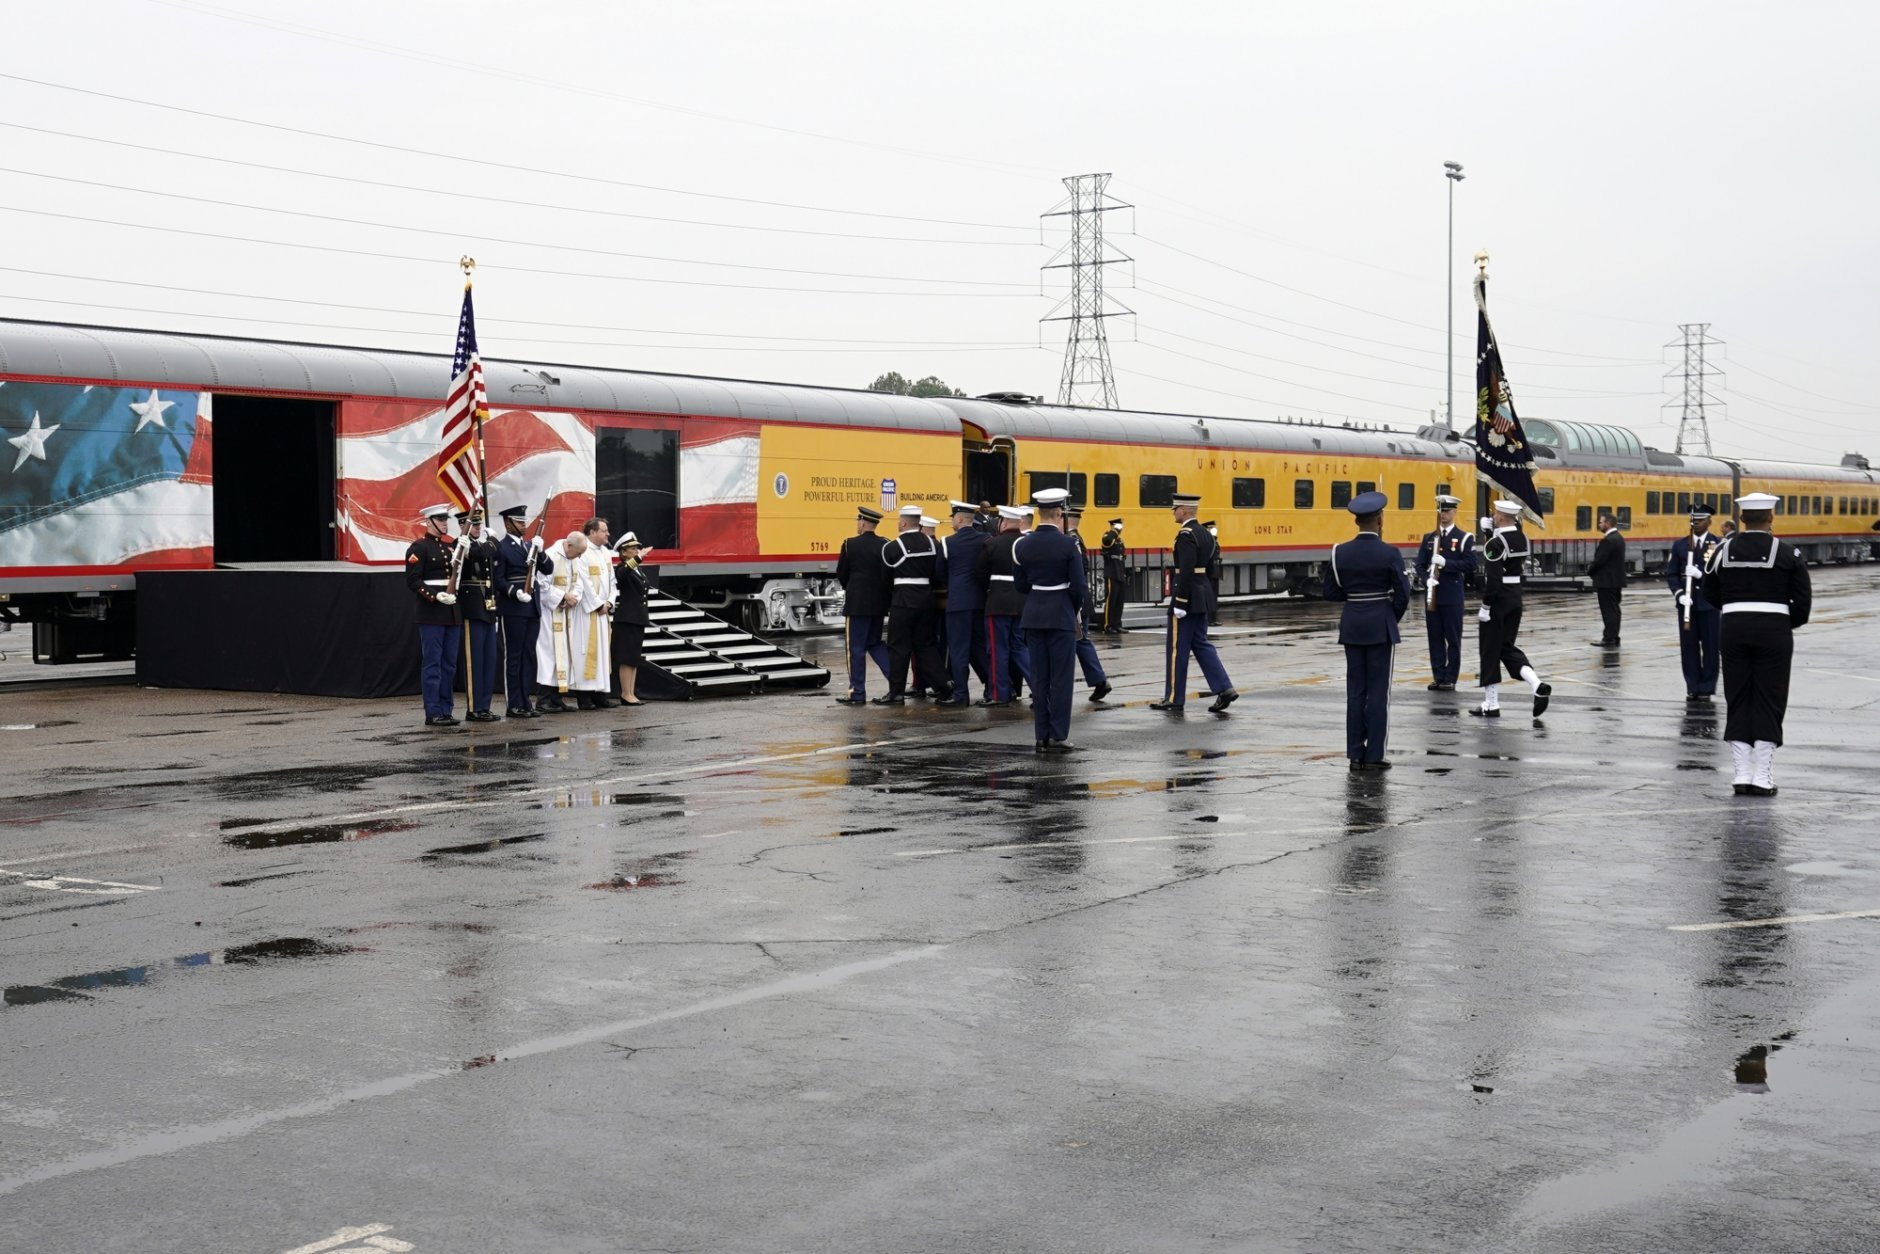 The flag-draped casket of former President George H.W. Bush is carried by a joint services military honor guard Thursday, Dec. 6, 2018, in Spring, Texas, to a Union Pacific train. (AP Photo/David J. Phillip, Pool)